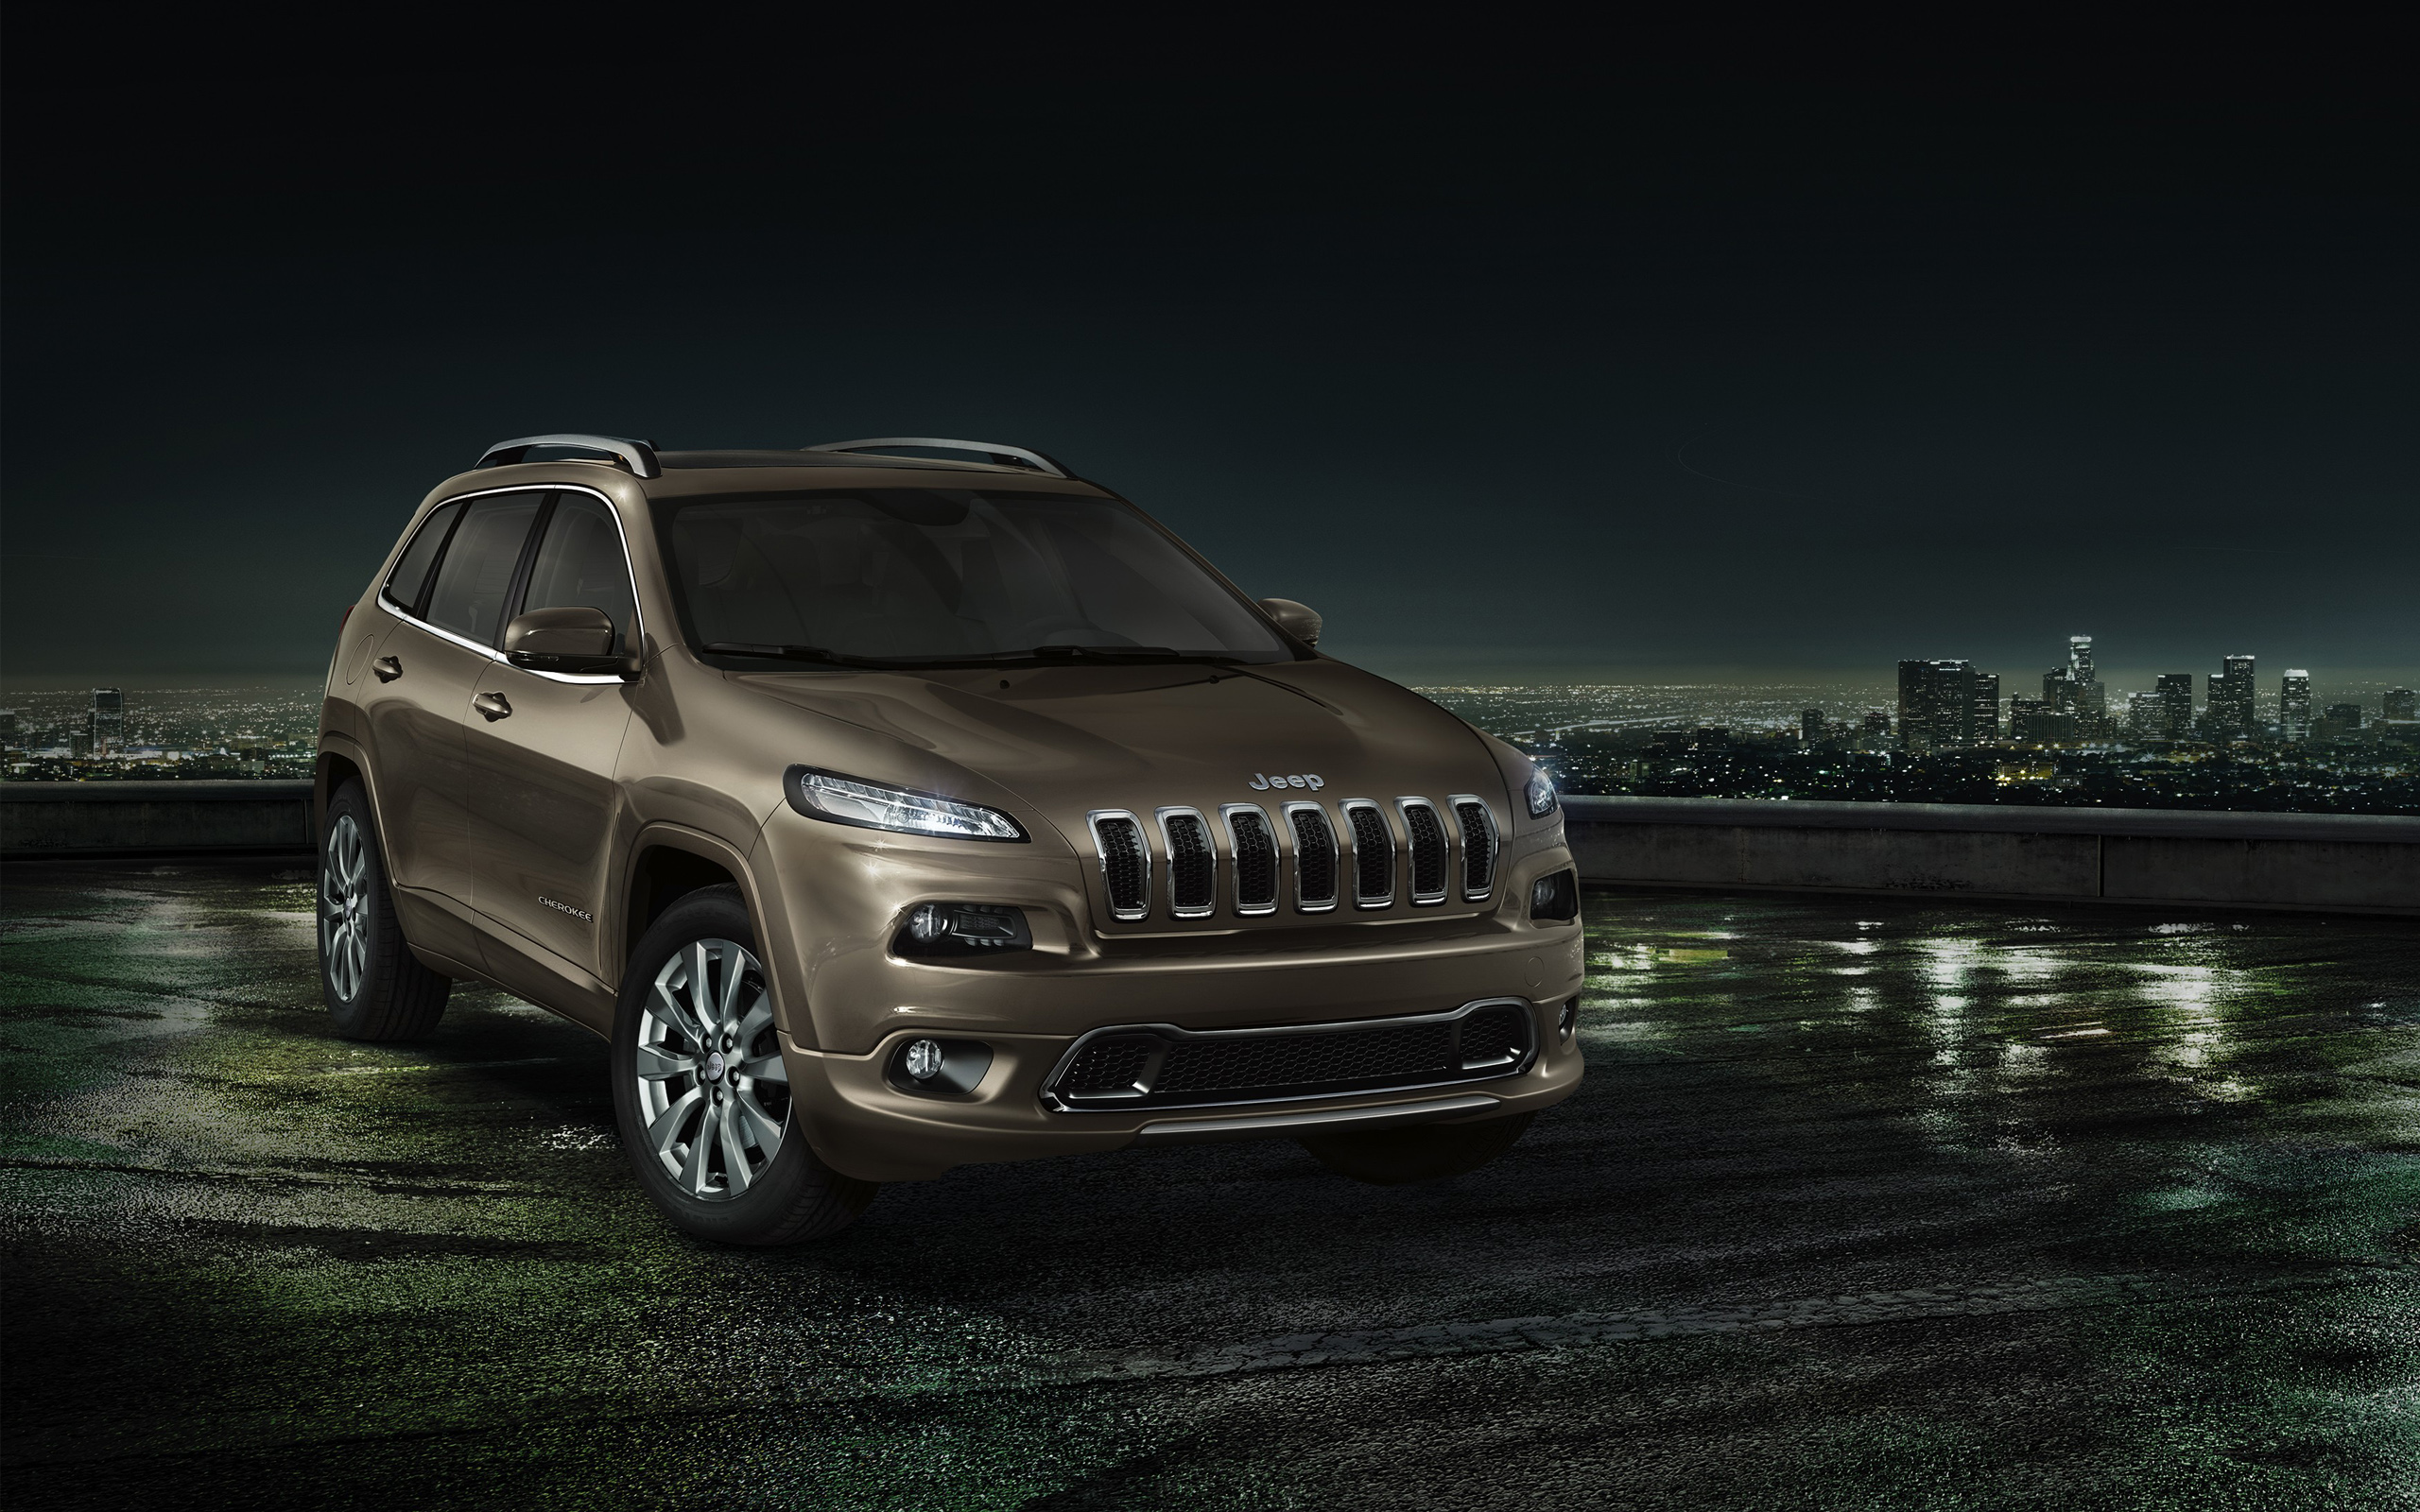 Jeep Grand Cherokee Wallpaper